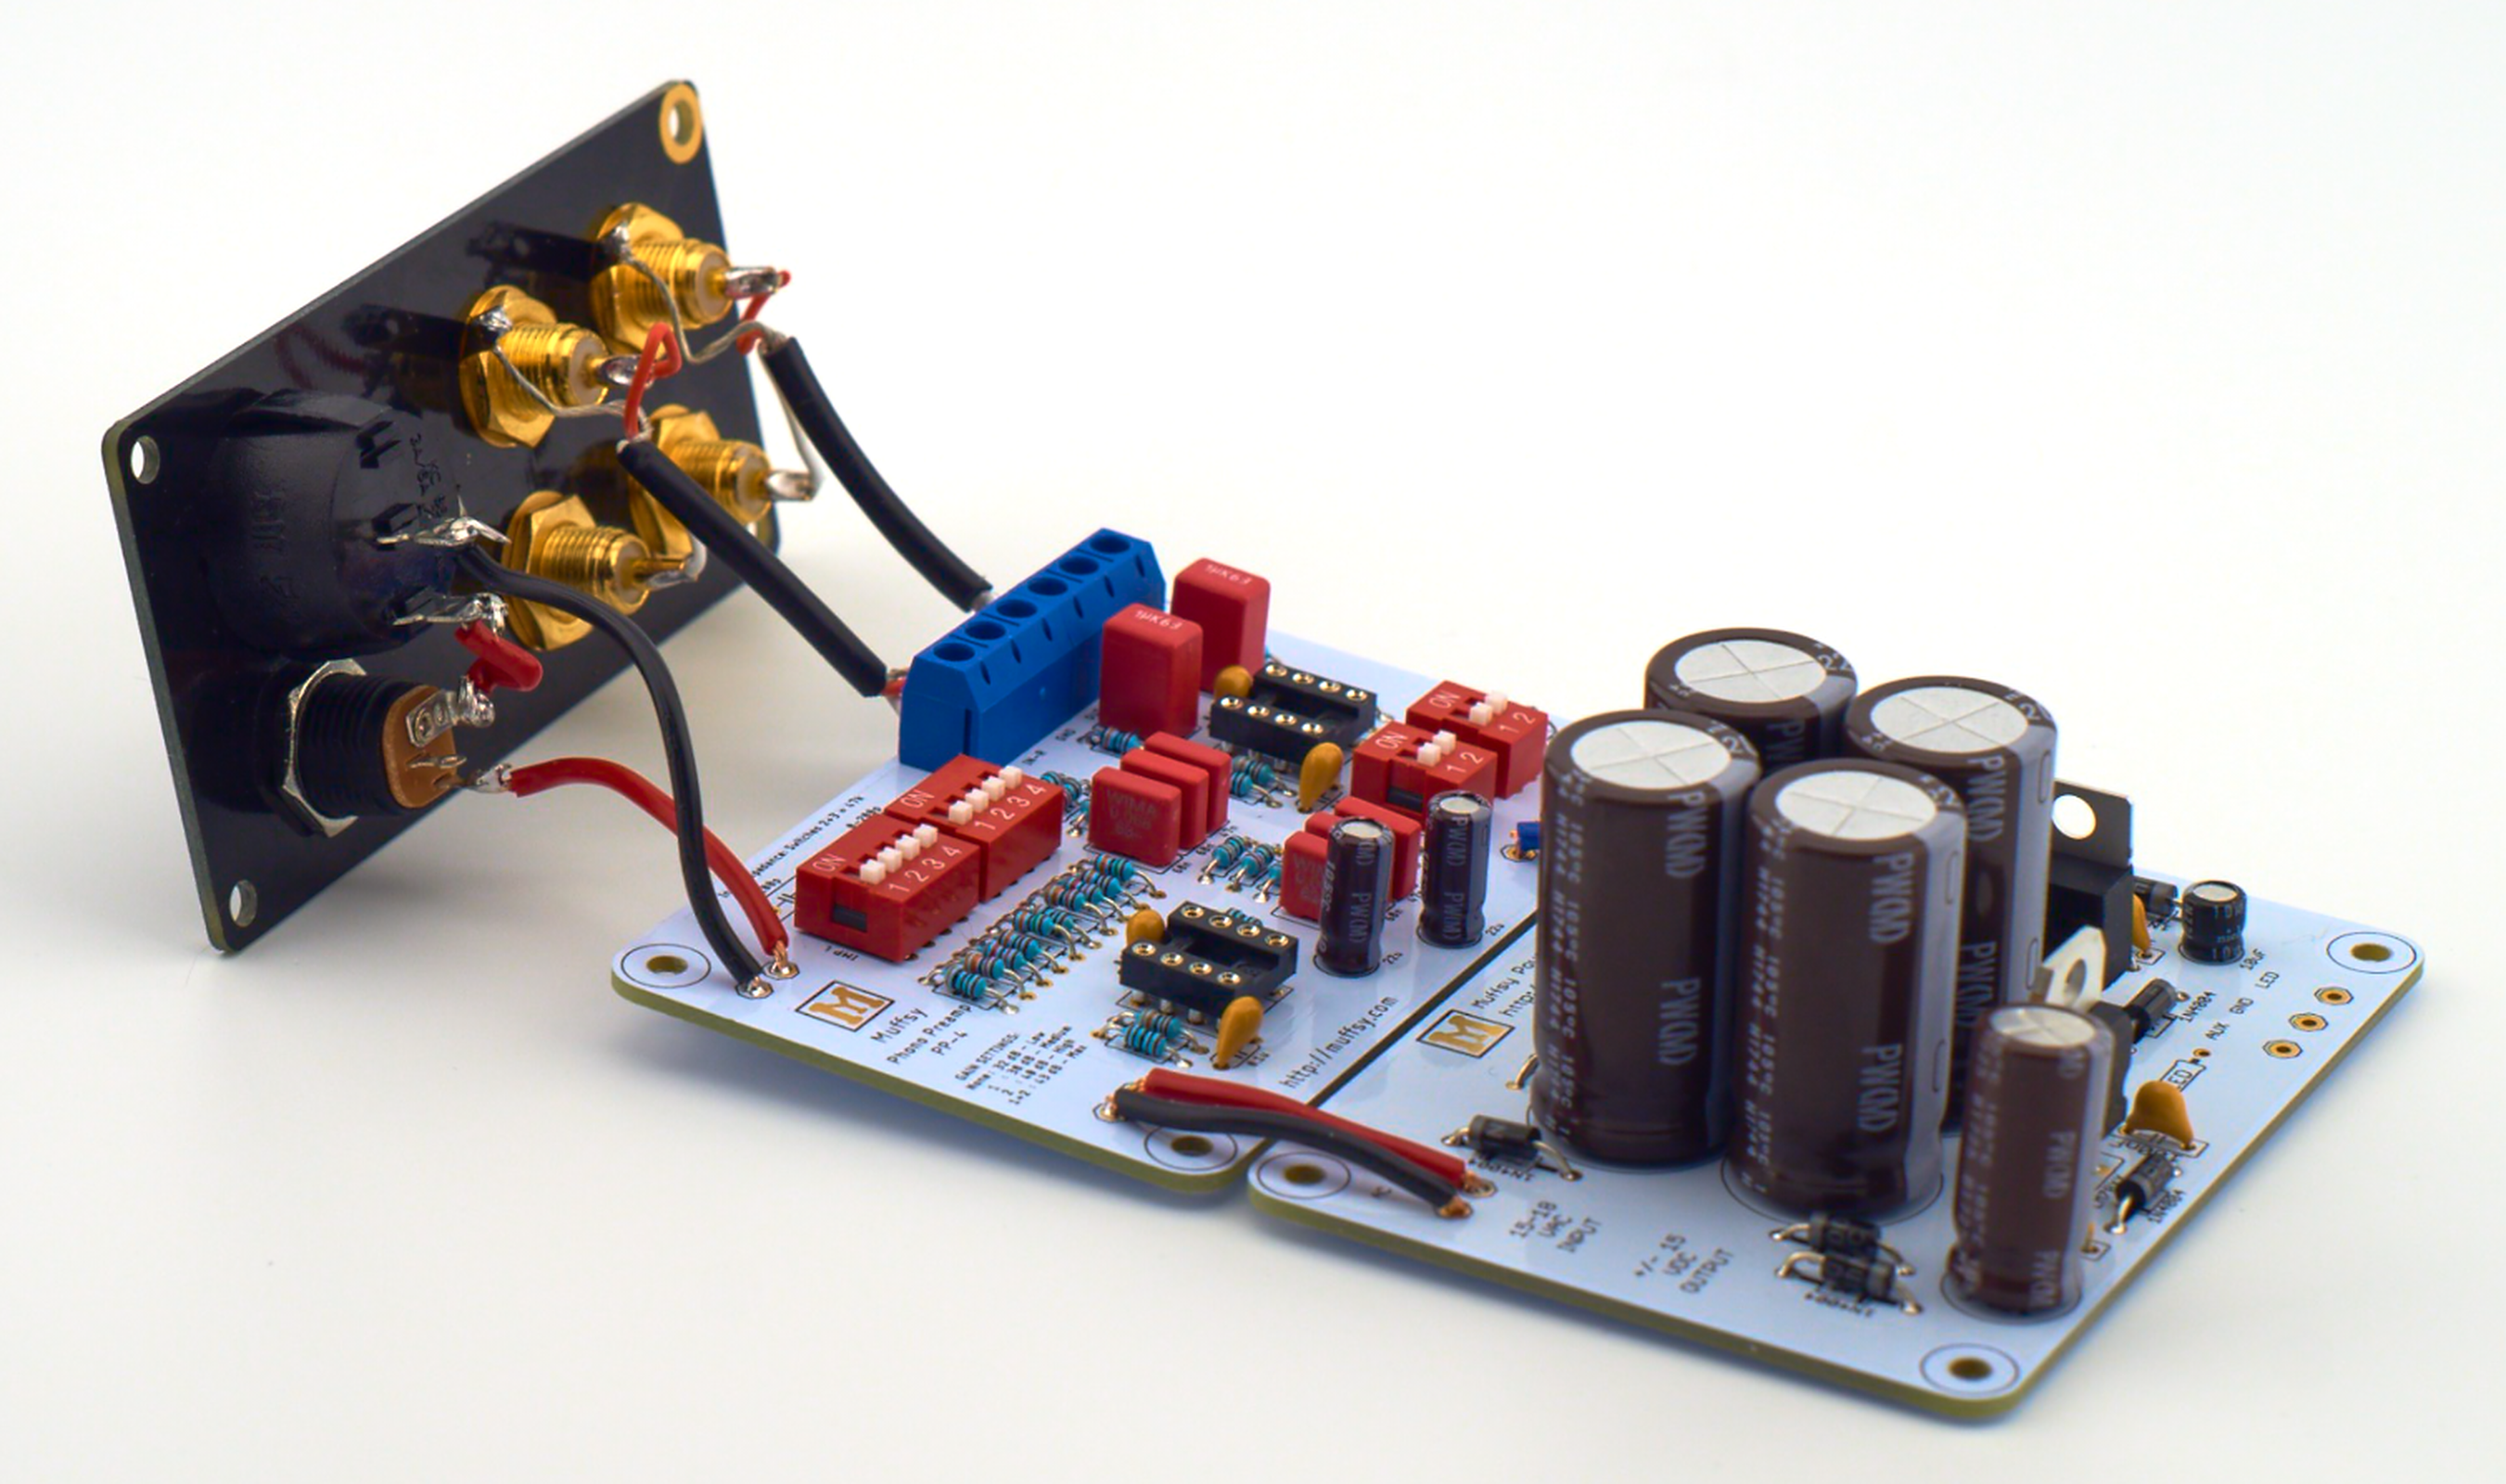 Muffsy Phono Preamp Kit From On Tindie 5532 Ic Mic Preamplifire Circuit 2